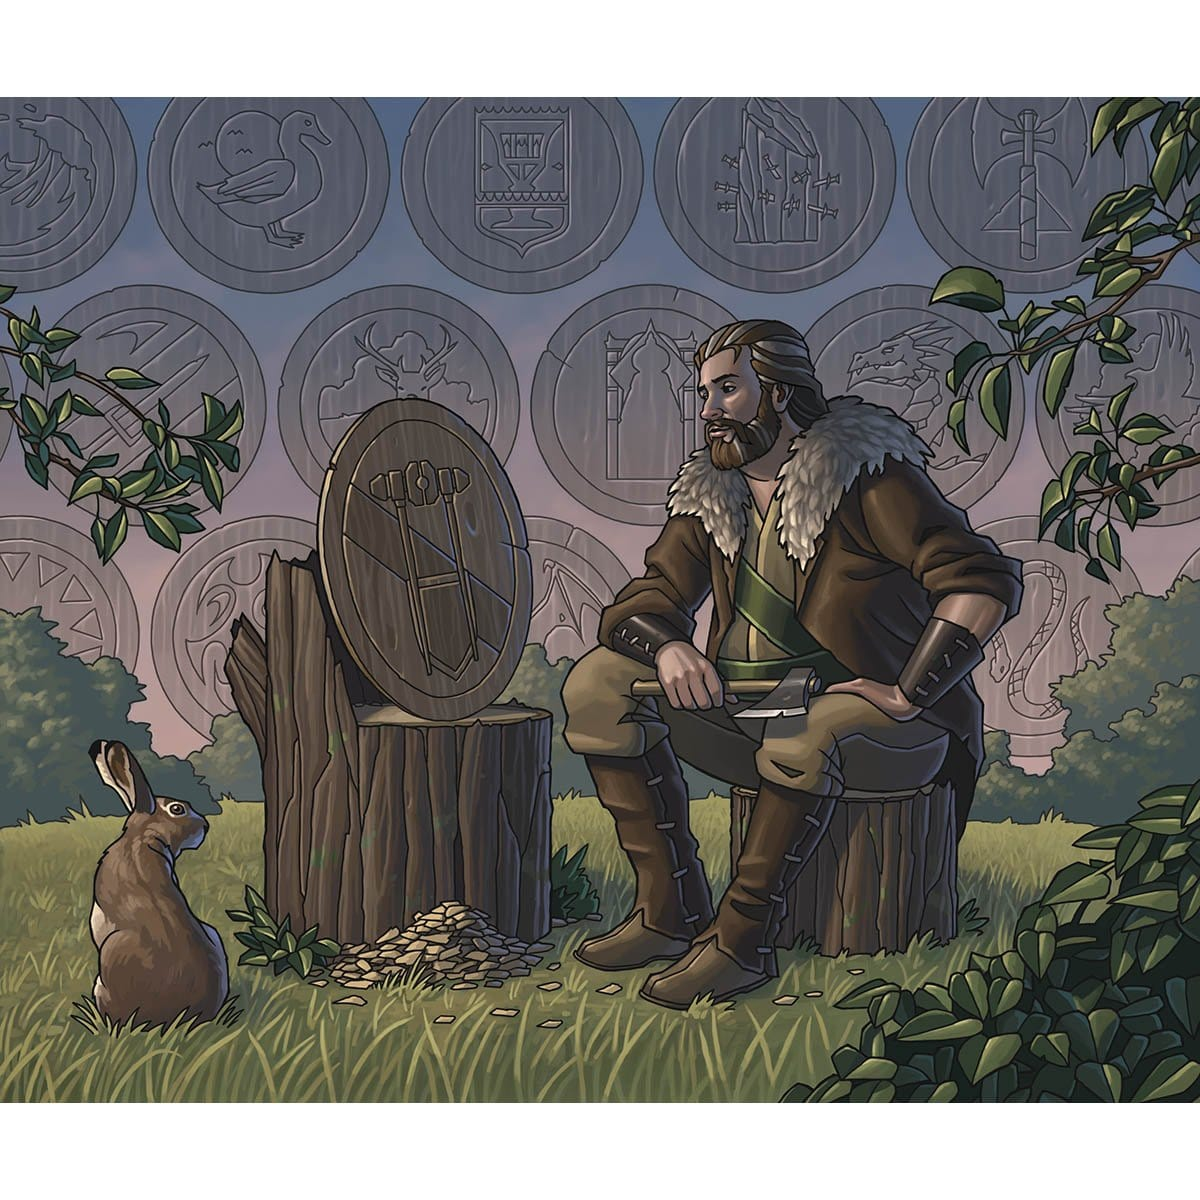 Garenbrig Carver Print - Print - Original Magic Art - Accessories for Magic the Gathering and other card games